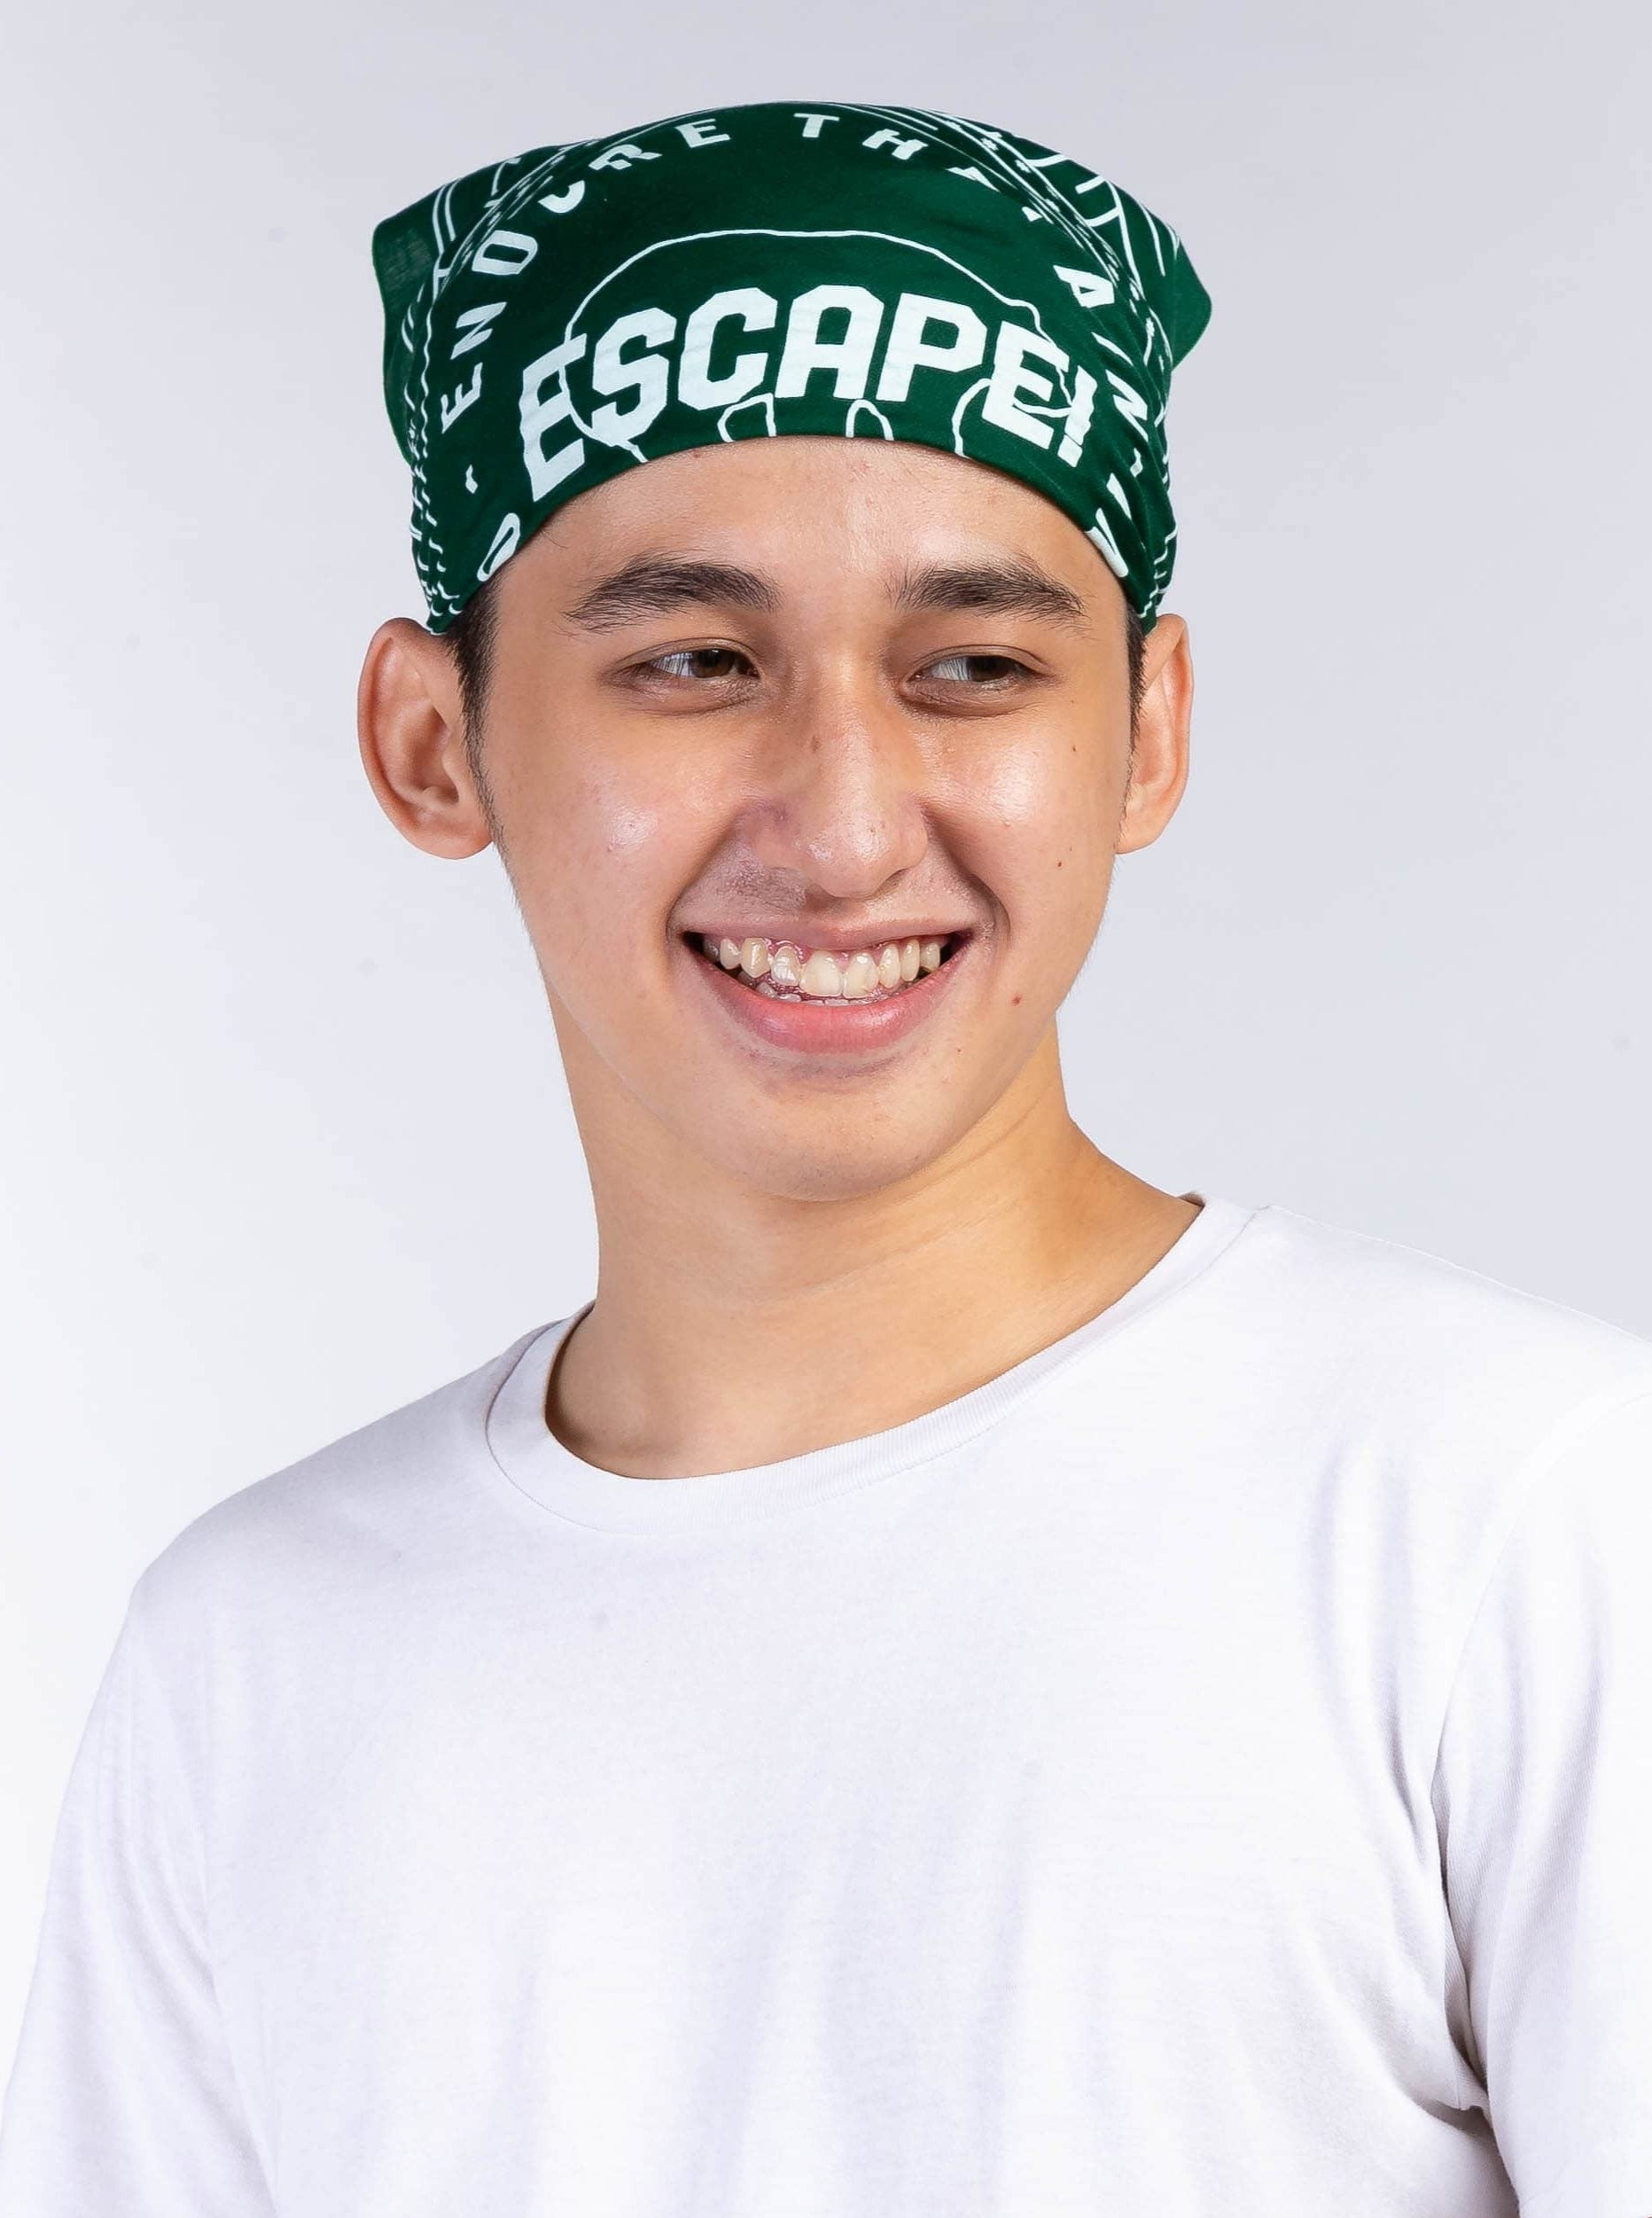 AZA Bandana - Escape Series